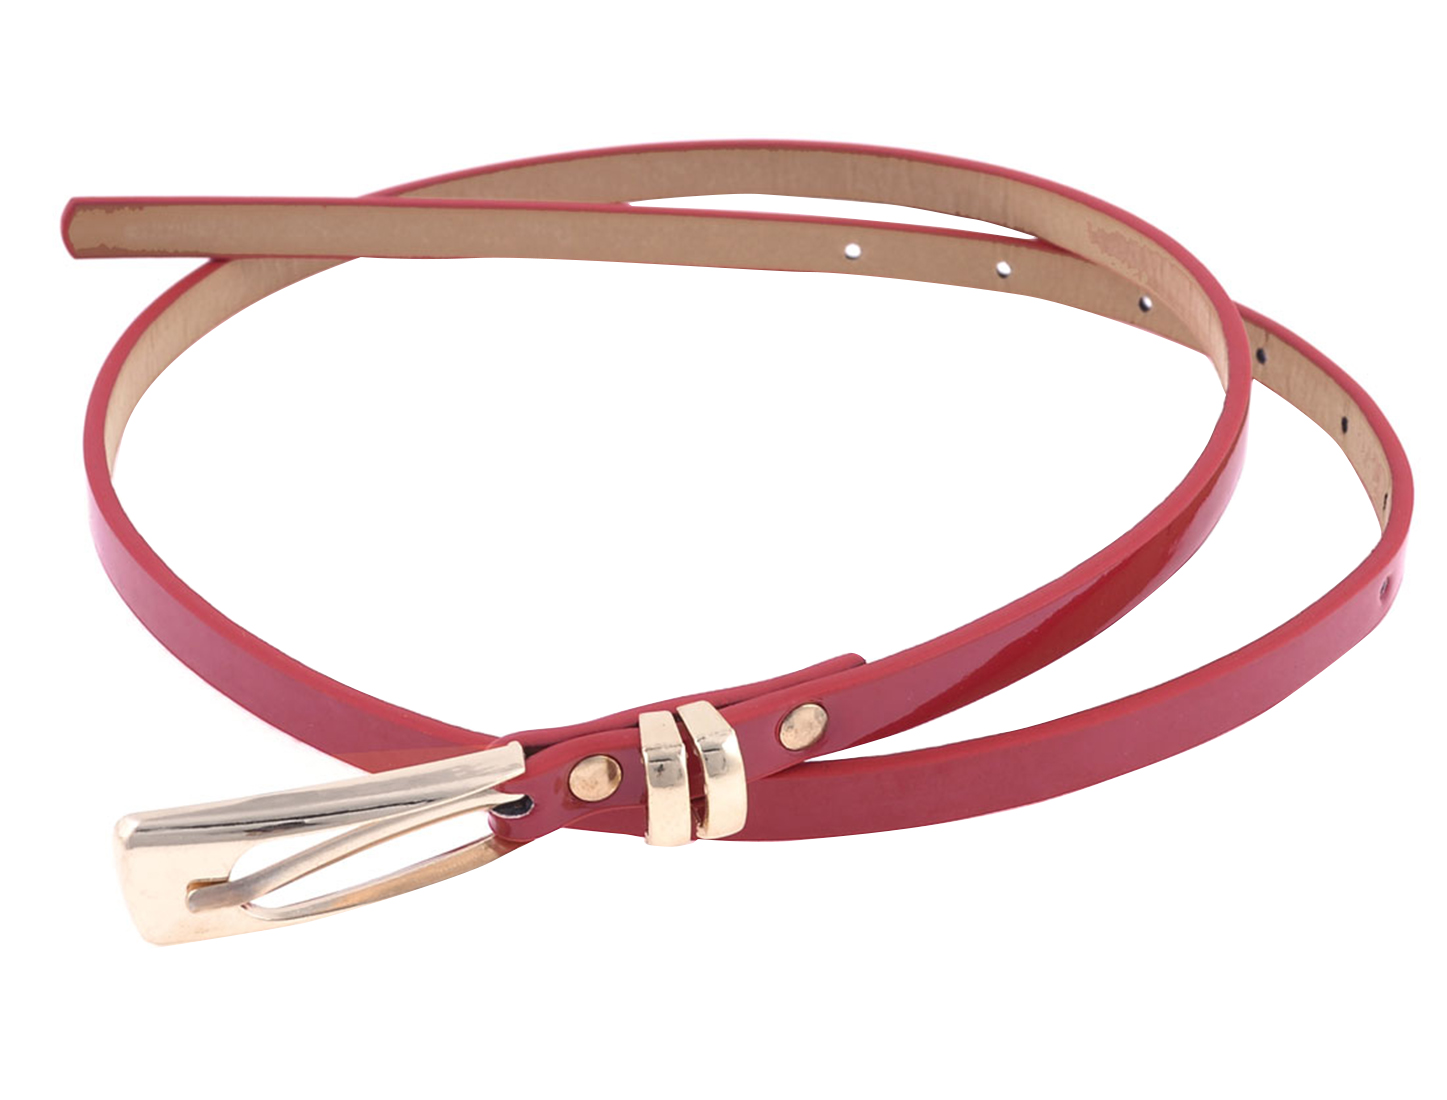 Red Adjustable One Pin Buckle Fuax Leather Slender Waist Belt for Ladies